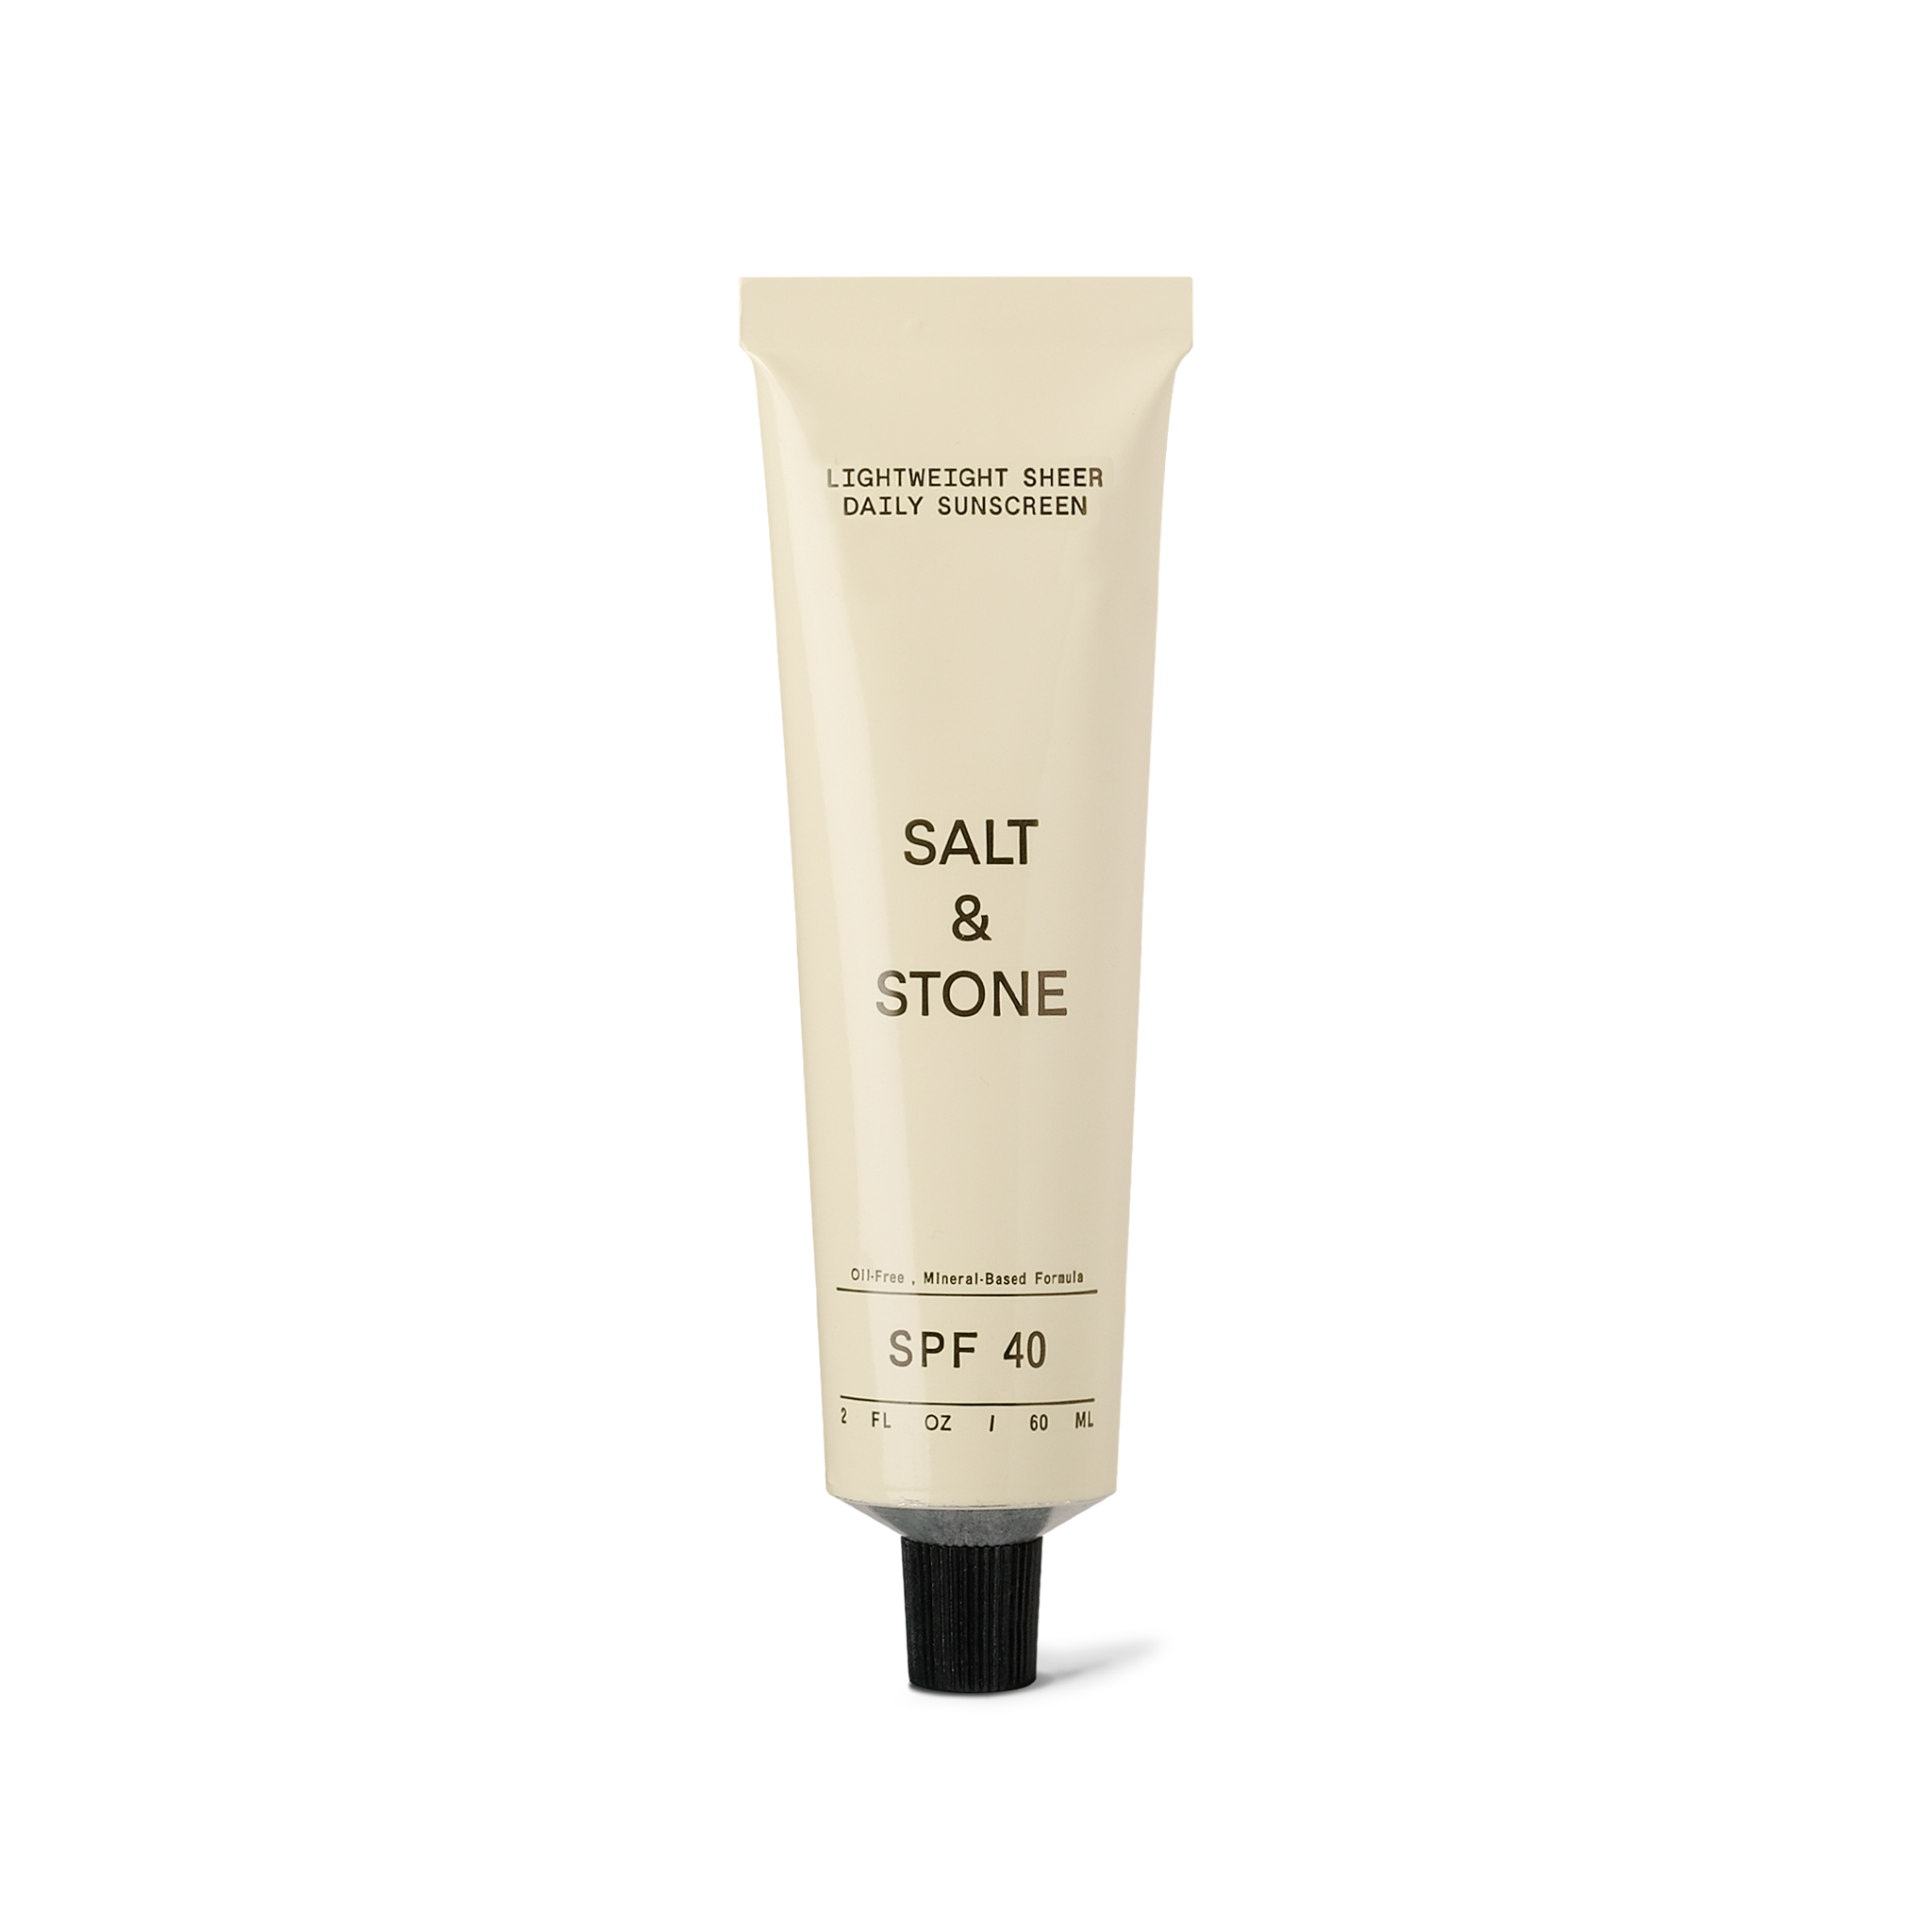 Bottle of the Salt and Stone Sunscreen Natural Lightweight Sheer Daily